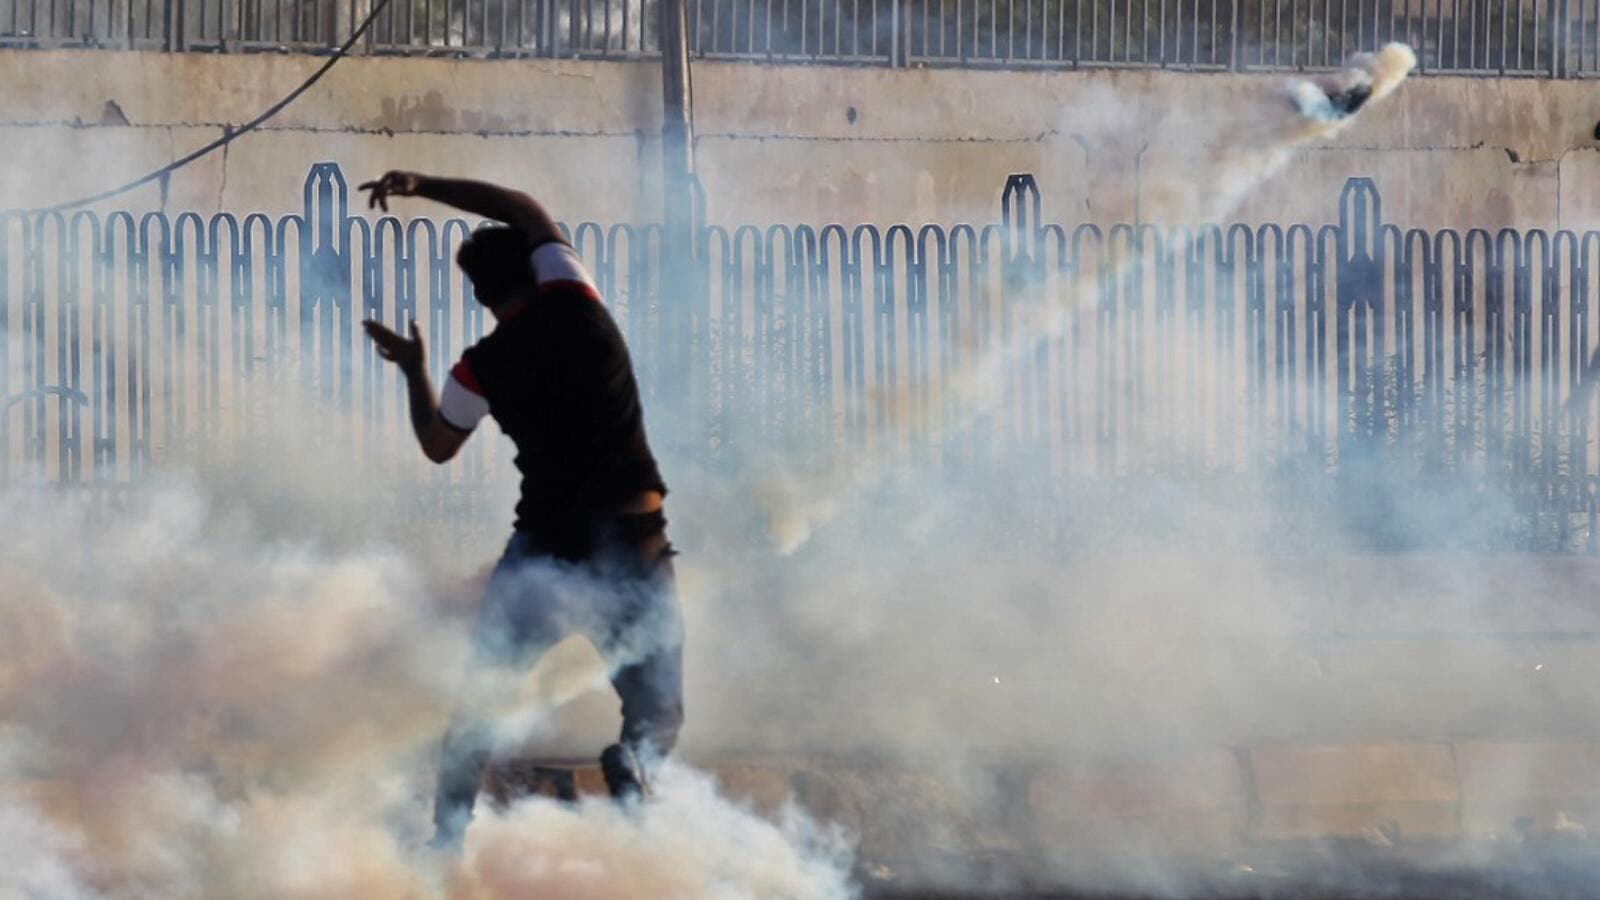 An Iraqi demonstrator gestures amidst smoke from burning tyres and tear gas during a demonstration against state corruption, failing public services and unemployment, in the Iraqi capital Baghdad on October 5, 2019. (AFP/ File Photo)